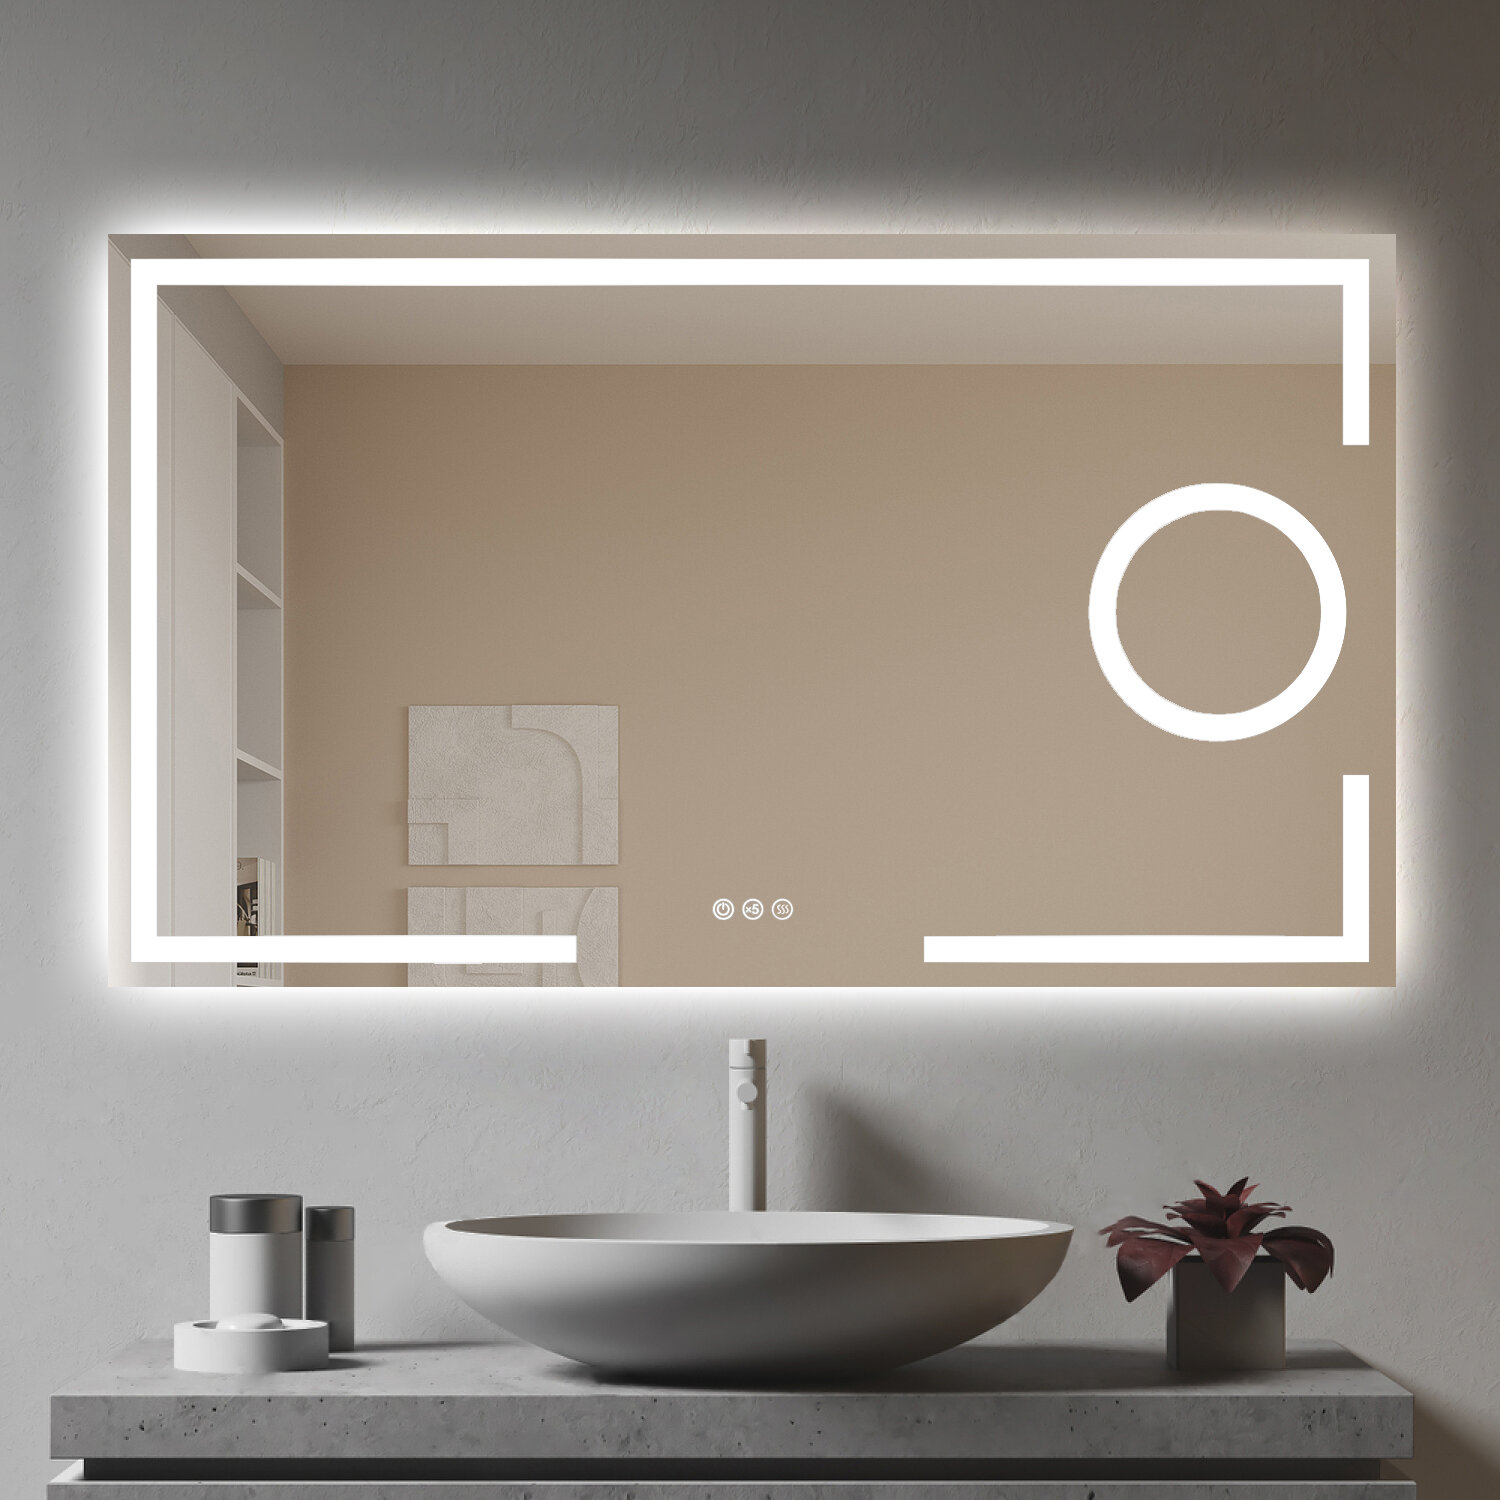 Ivy Bronx Led Lighted Bathroom Wall Mounted Mirror Anti Fog Dimmable Makeup Vanity Mirror With 5x Magnifier Wayfair Ca